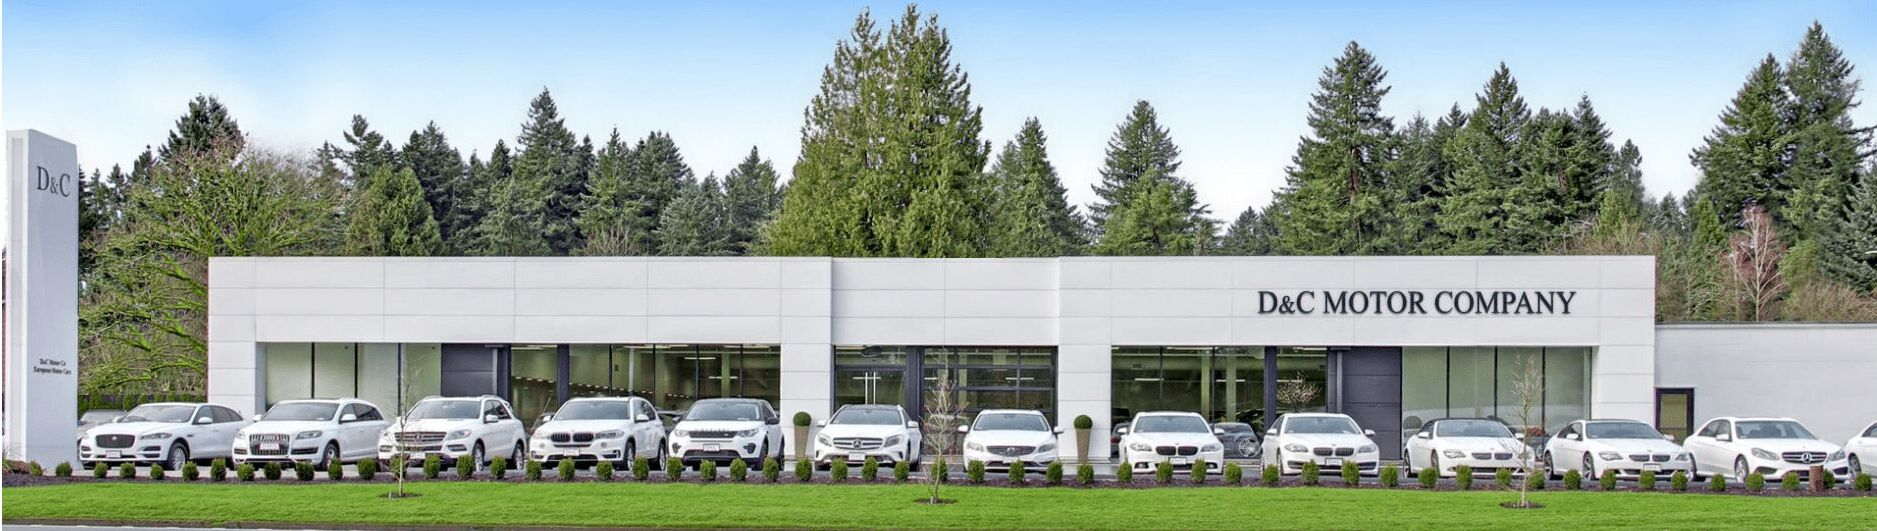 Luxury And European Dealership Portland Or Used Cars D C Motor Company